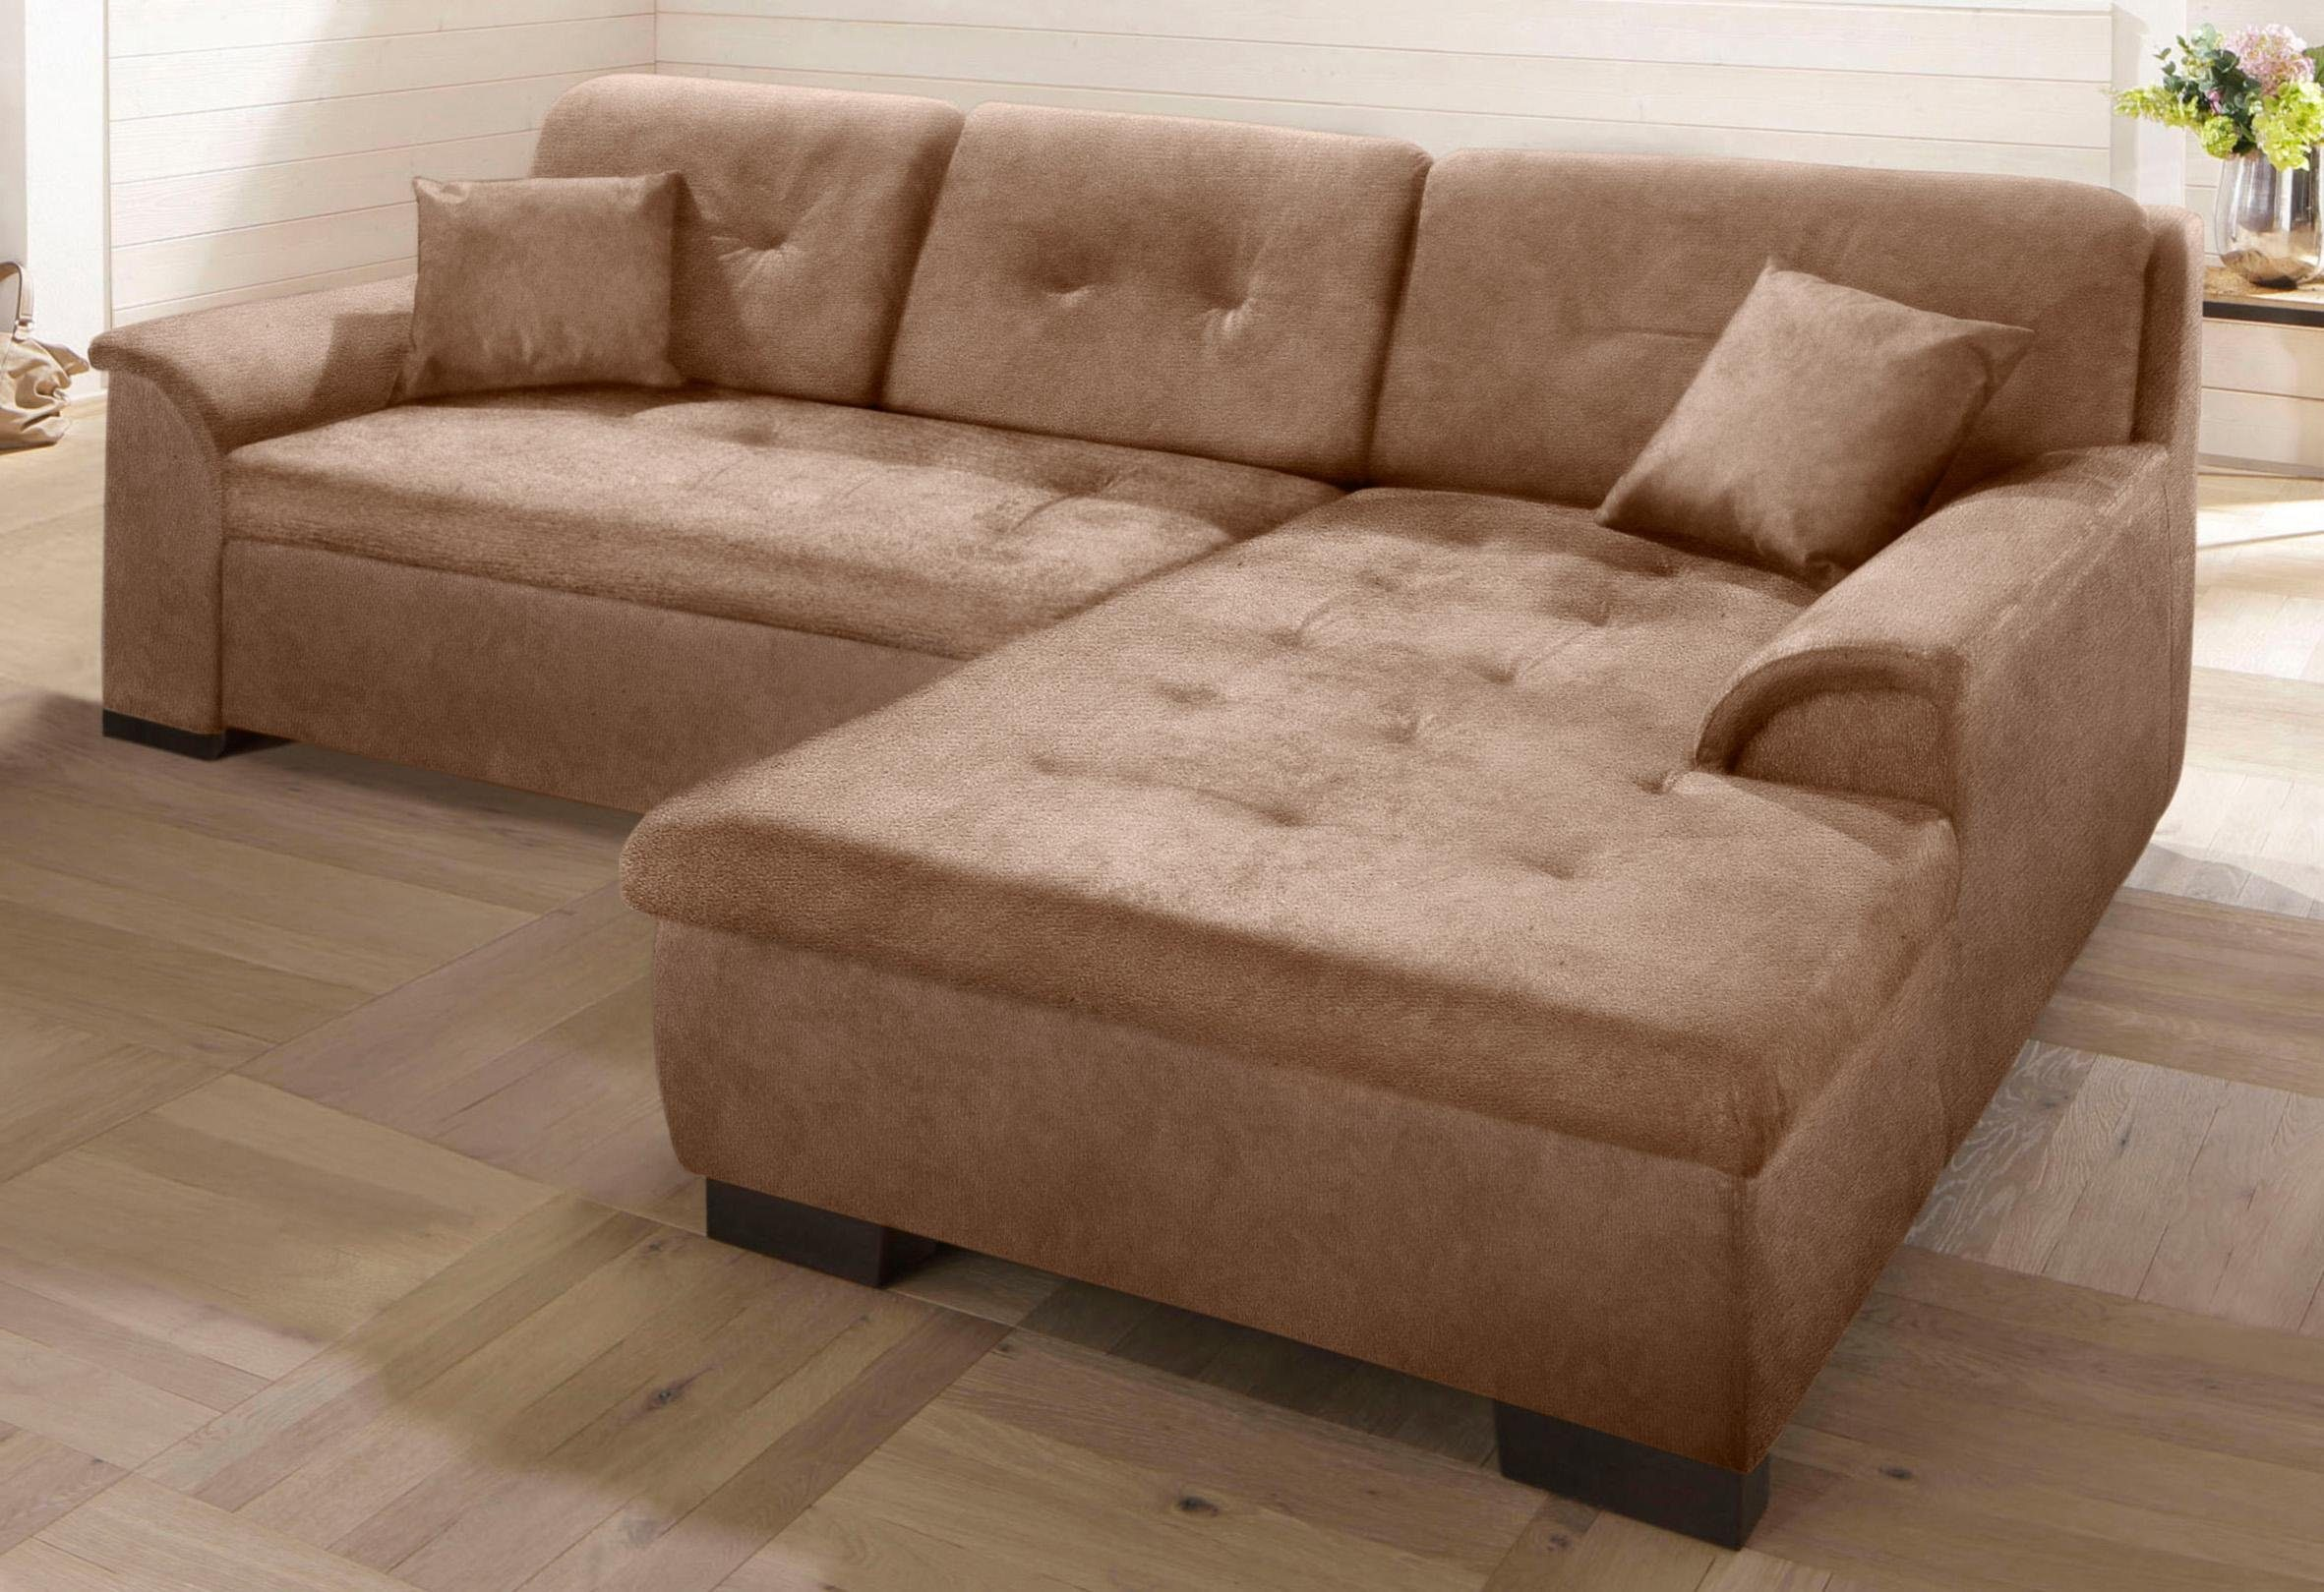 Otto Versand Home Affaire Otto Home Affaire Sofa Otto Sofas Gnstig Teuer Big Sofa